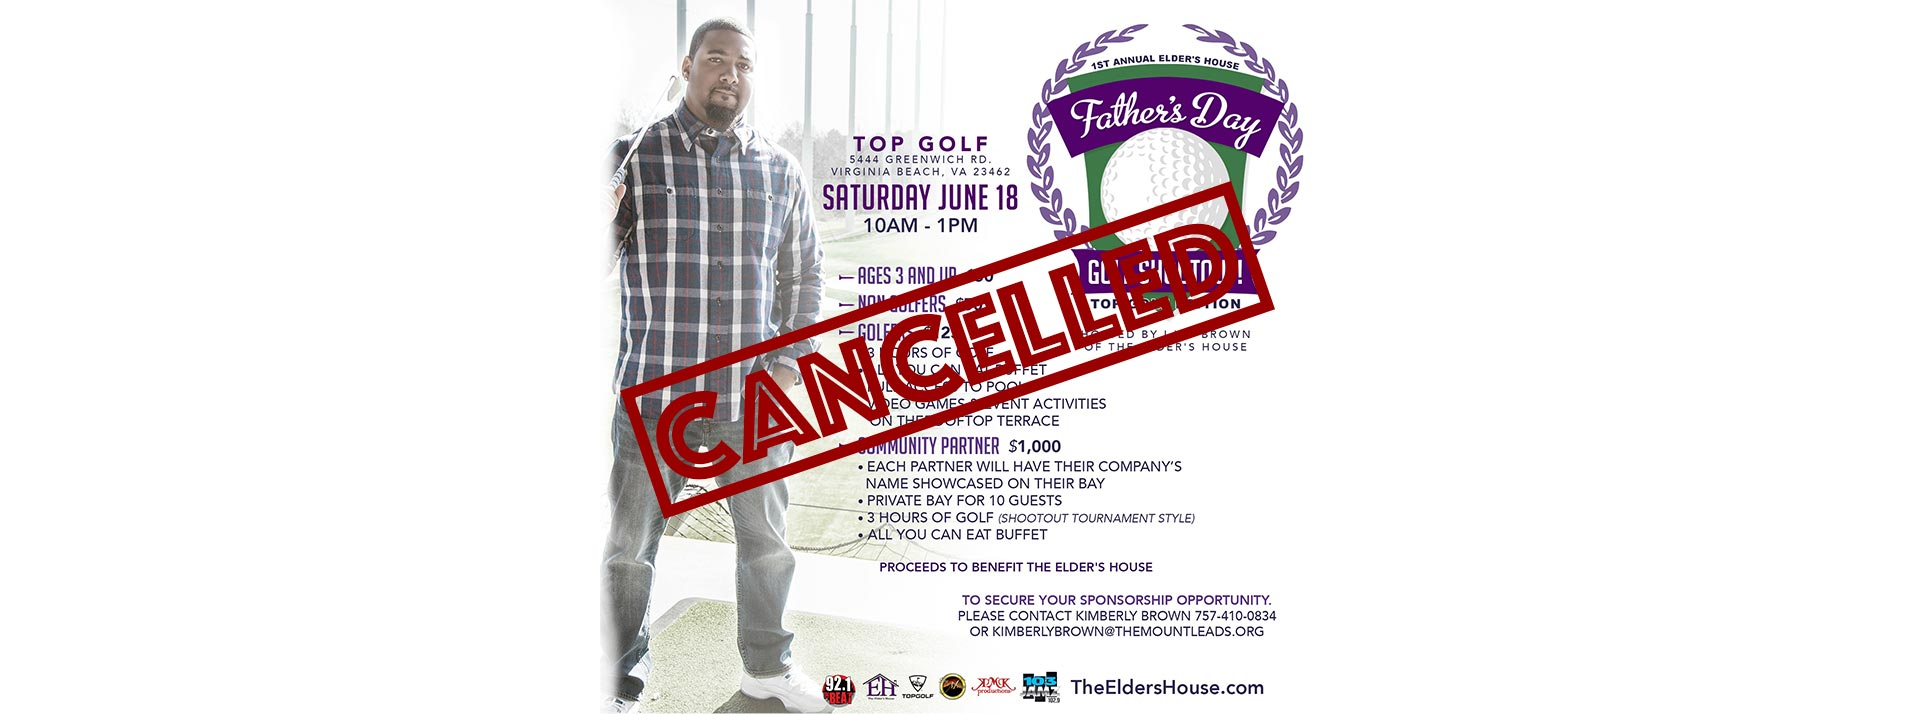 Cancelled: Father's Day Golf Shootout